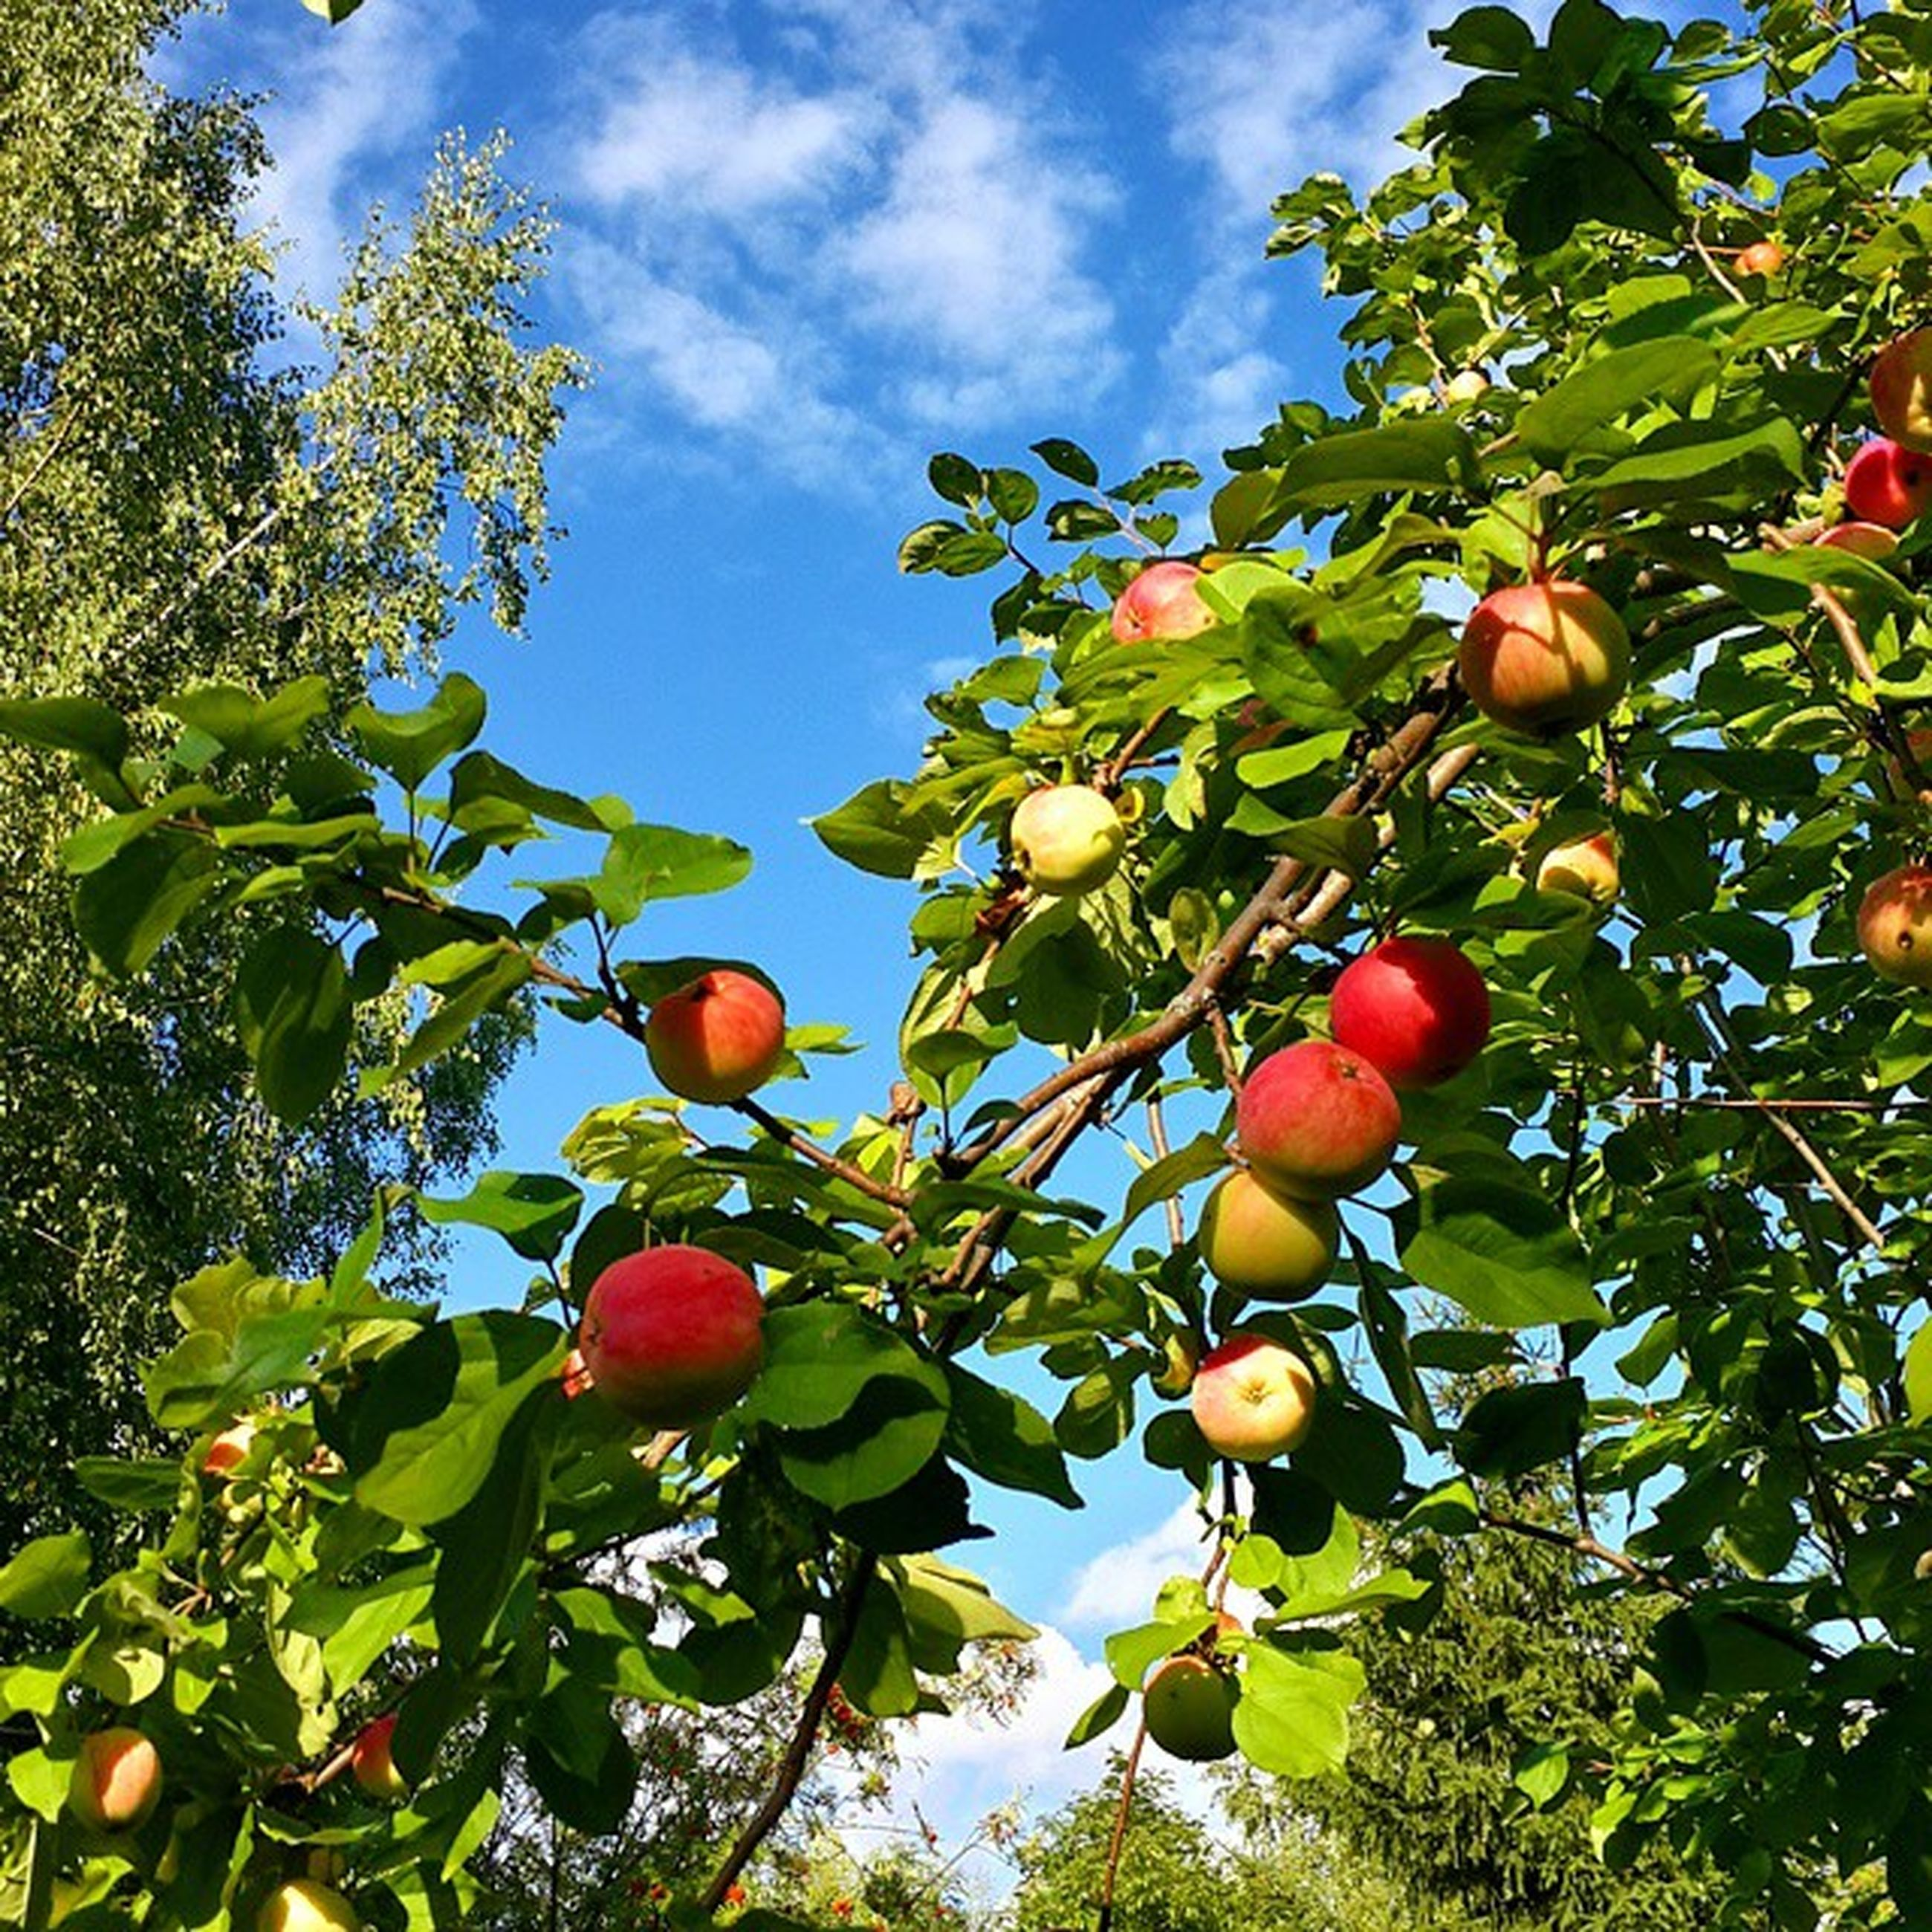 fruit, tree, food and drink, low angle view, food, branch, growth, healthy eating, freshness, leaf, ripe, sky, nature, green color, apple tree, apple - fruit, hanging, day, red, outdoors